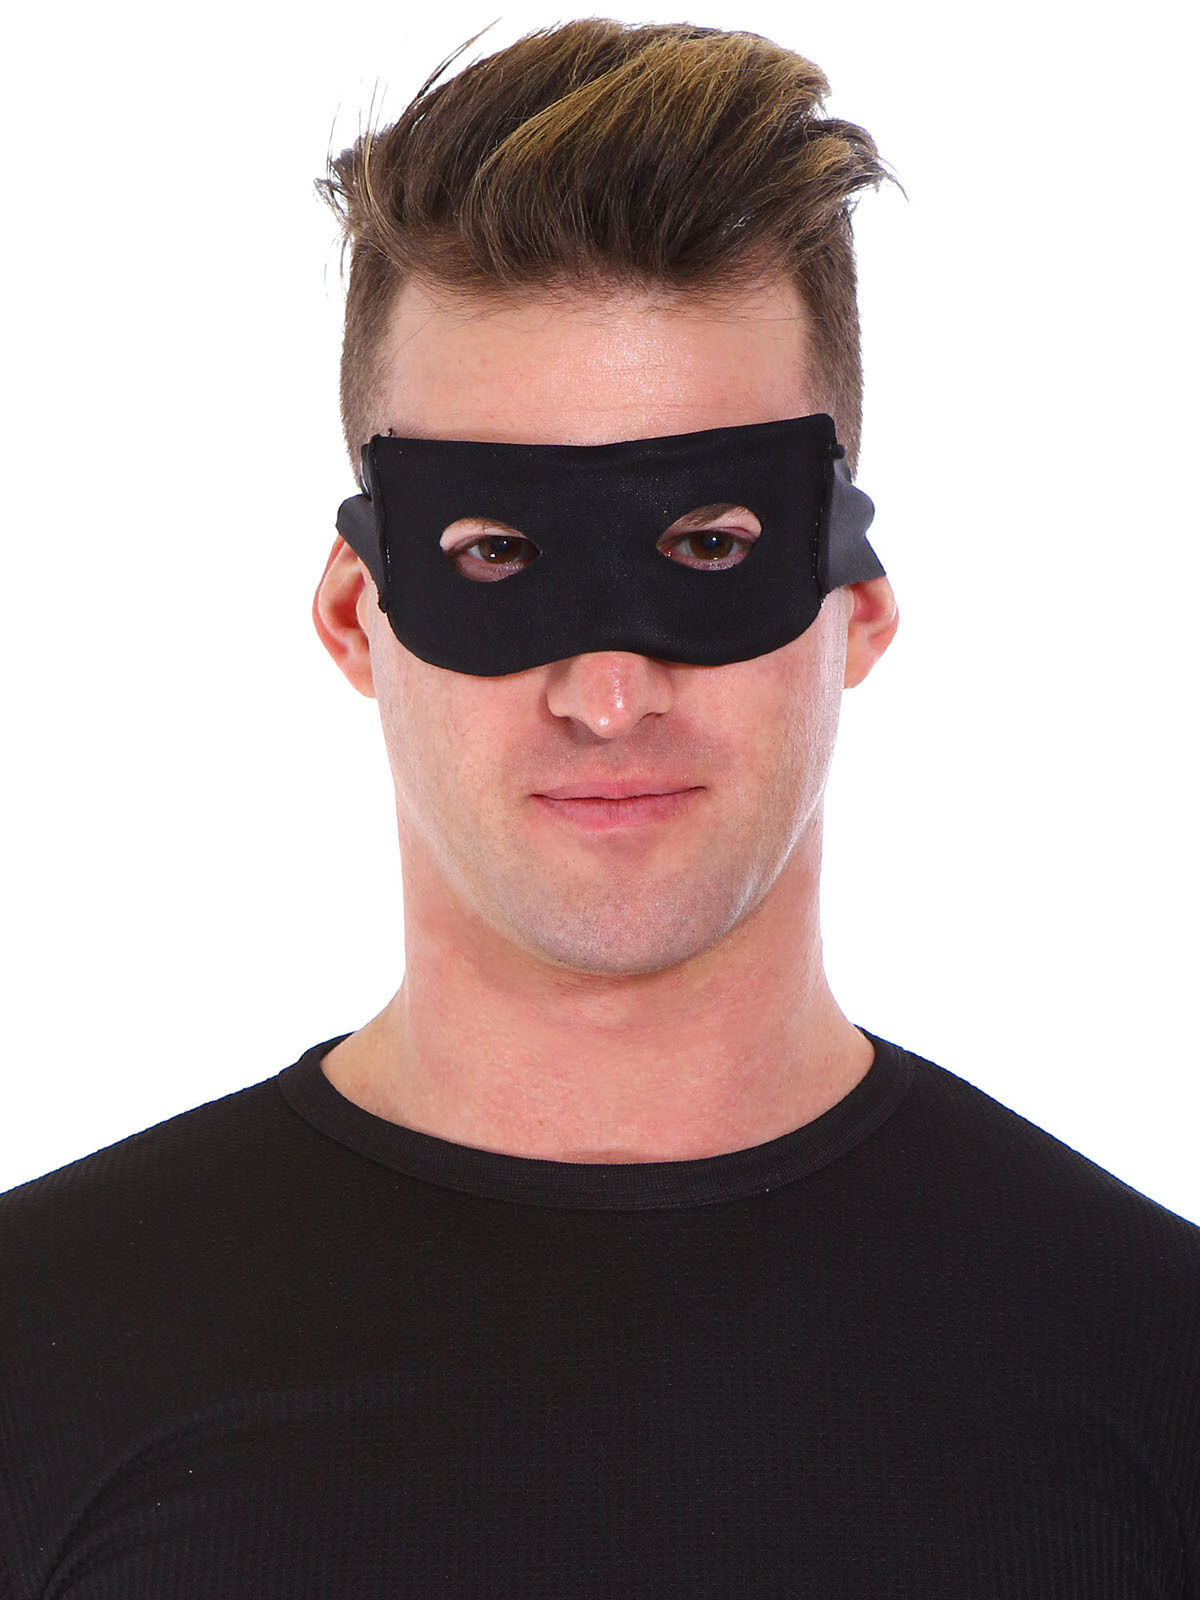 black eye mask adult mens eye mask bandit zorro halloween costume fancy dress. Black Bedroom Furniture Sets. Home Design Ideas